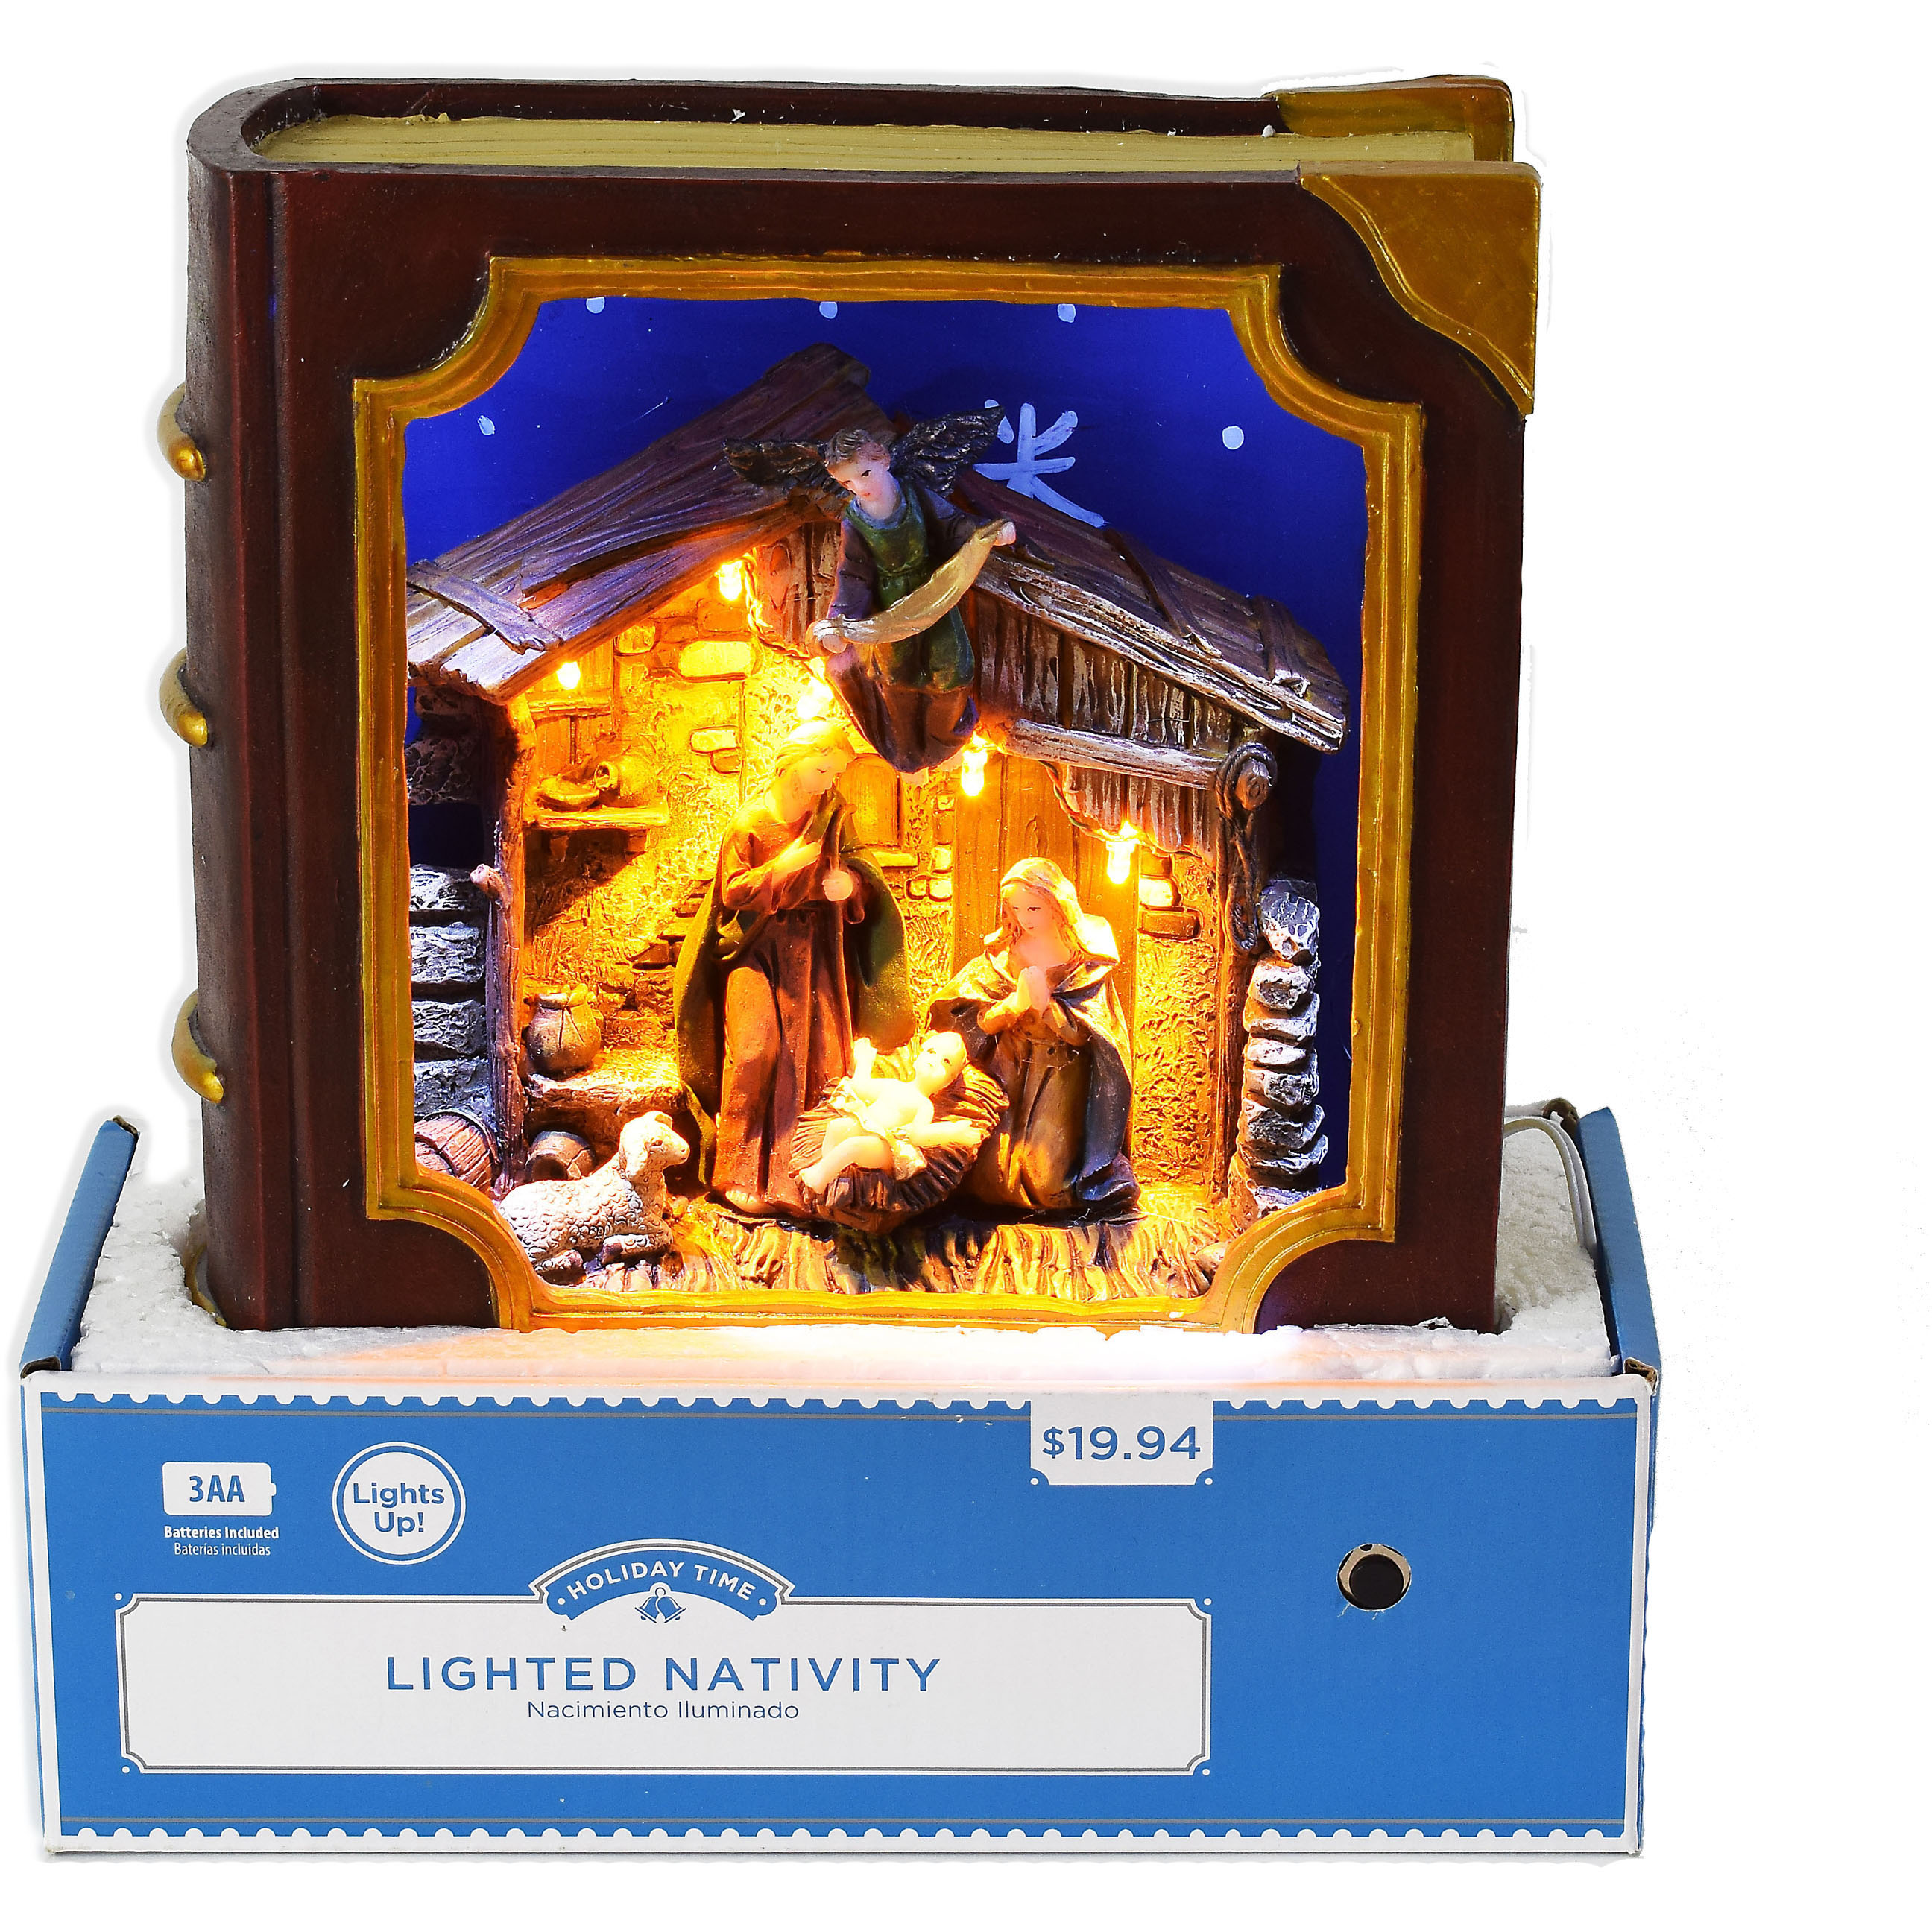 Holiday Time Lighted Nativity Book